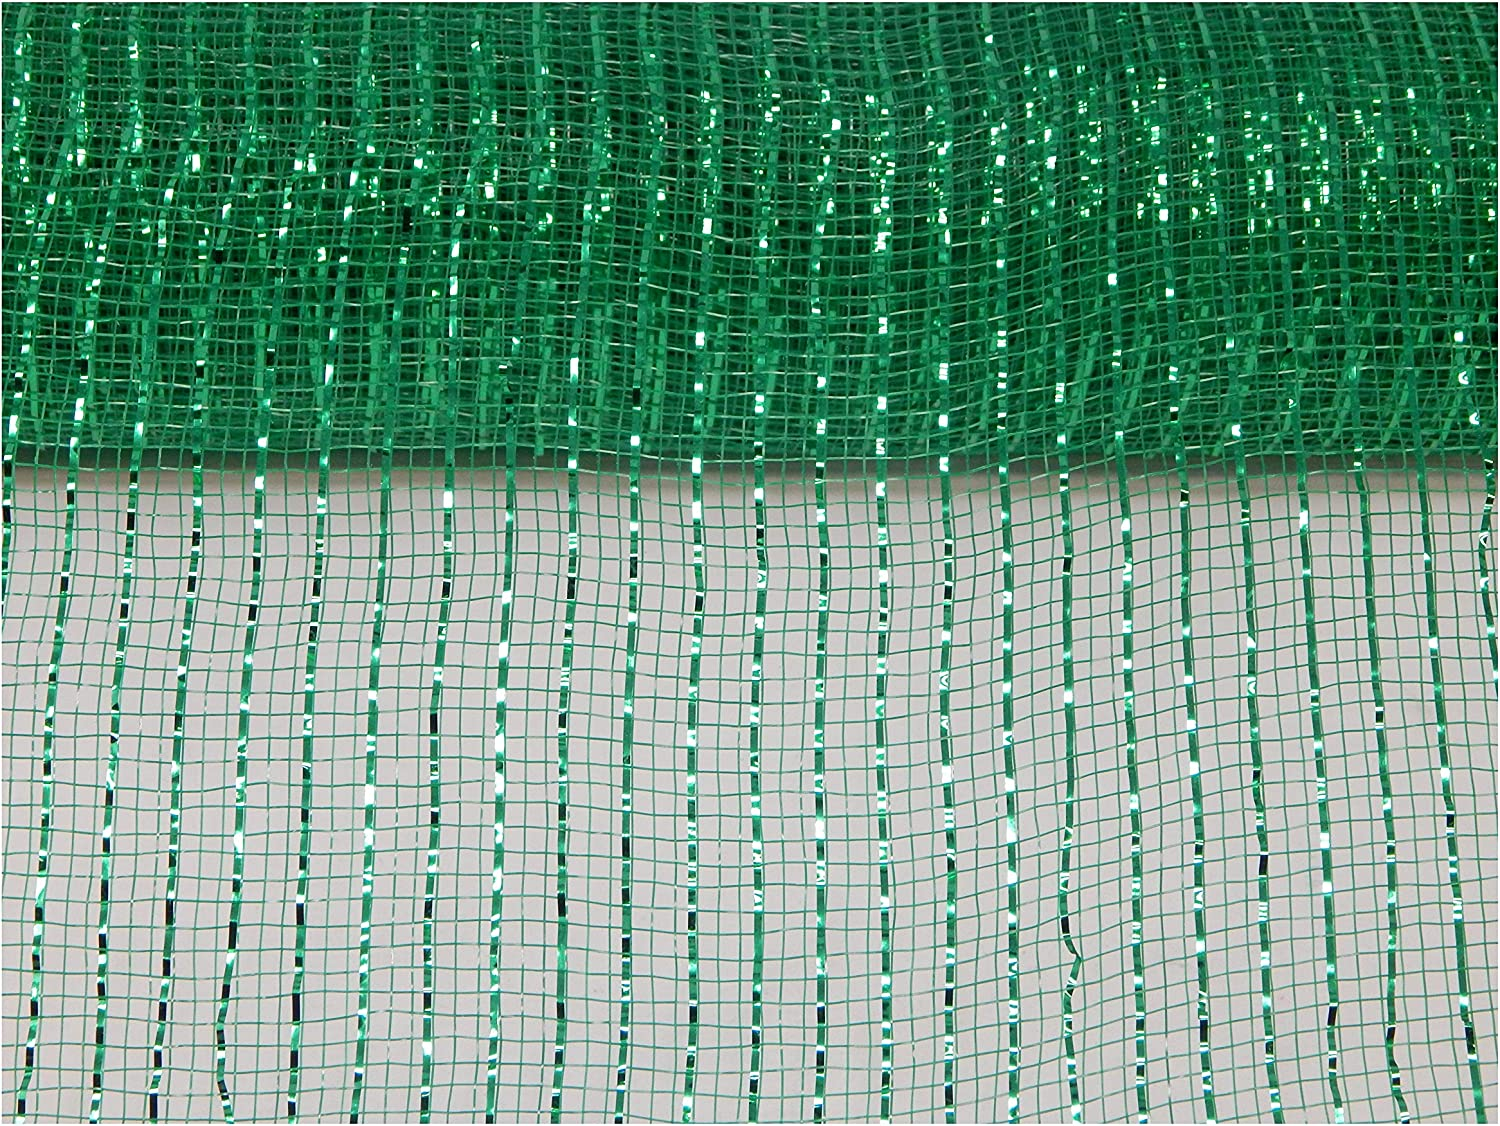 Floral Supply Online - 10 inch x 30 feet Metallic Deco Poly Mesh Ribbon. The Exclusive Metallic Mesh with A Unique Touch of Color and Sparkle. (Emerald)